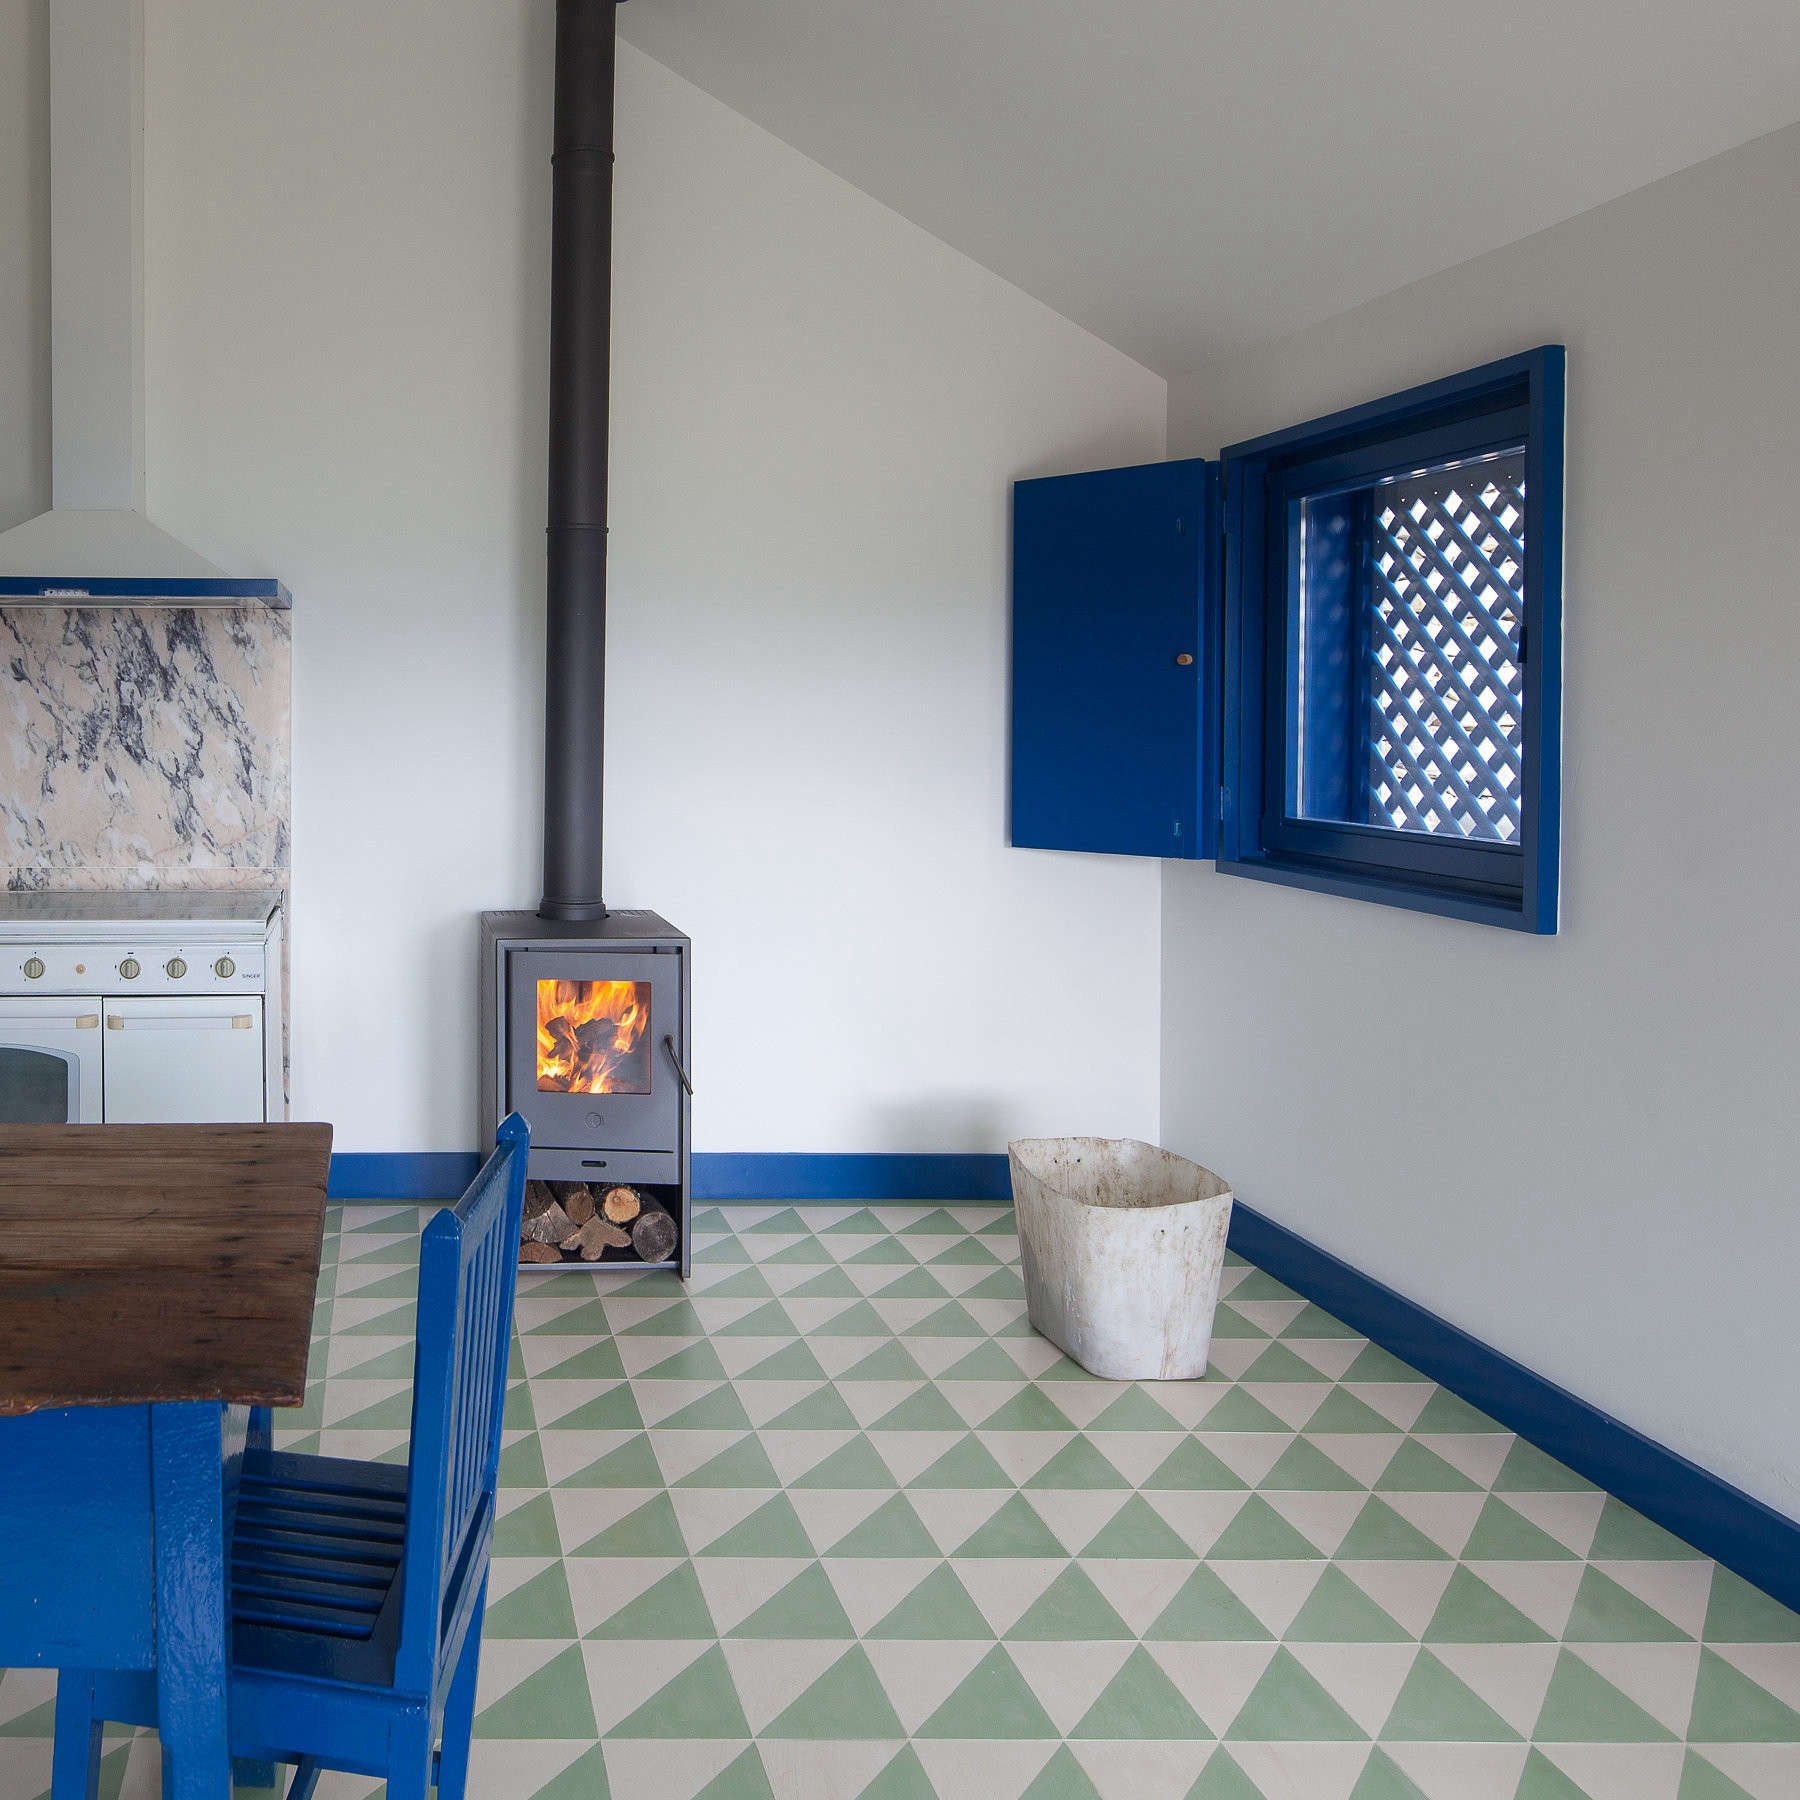 a freestanding wood stove is the heat source in the evenings and colder months. 10